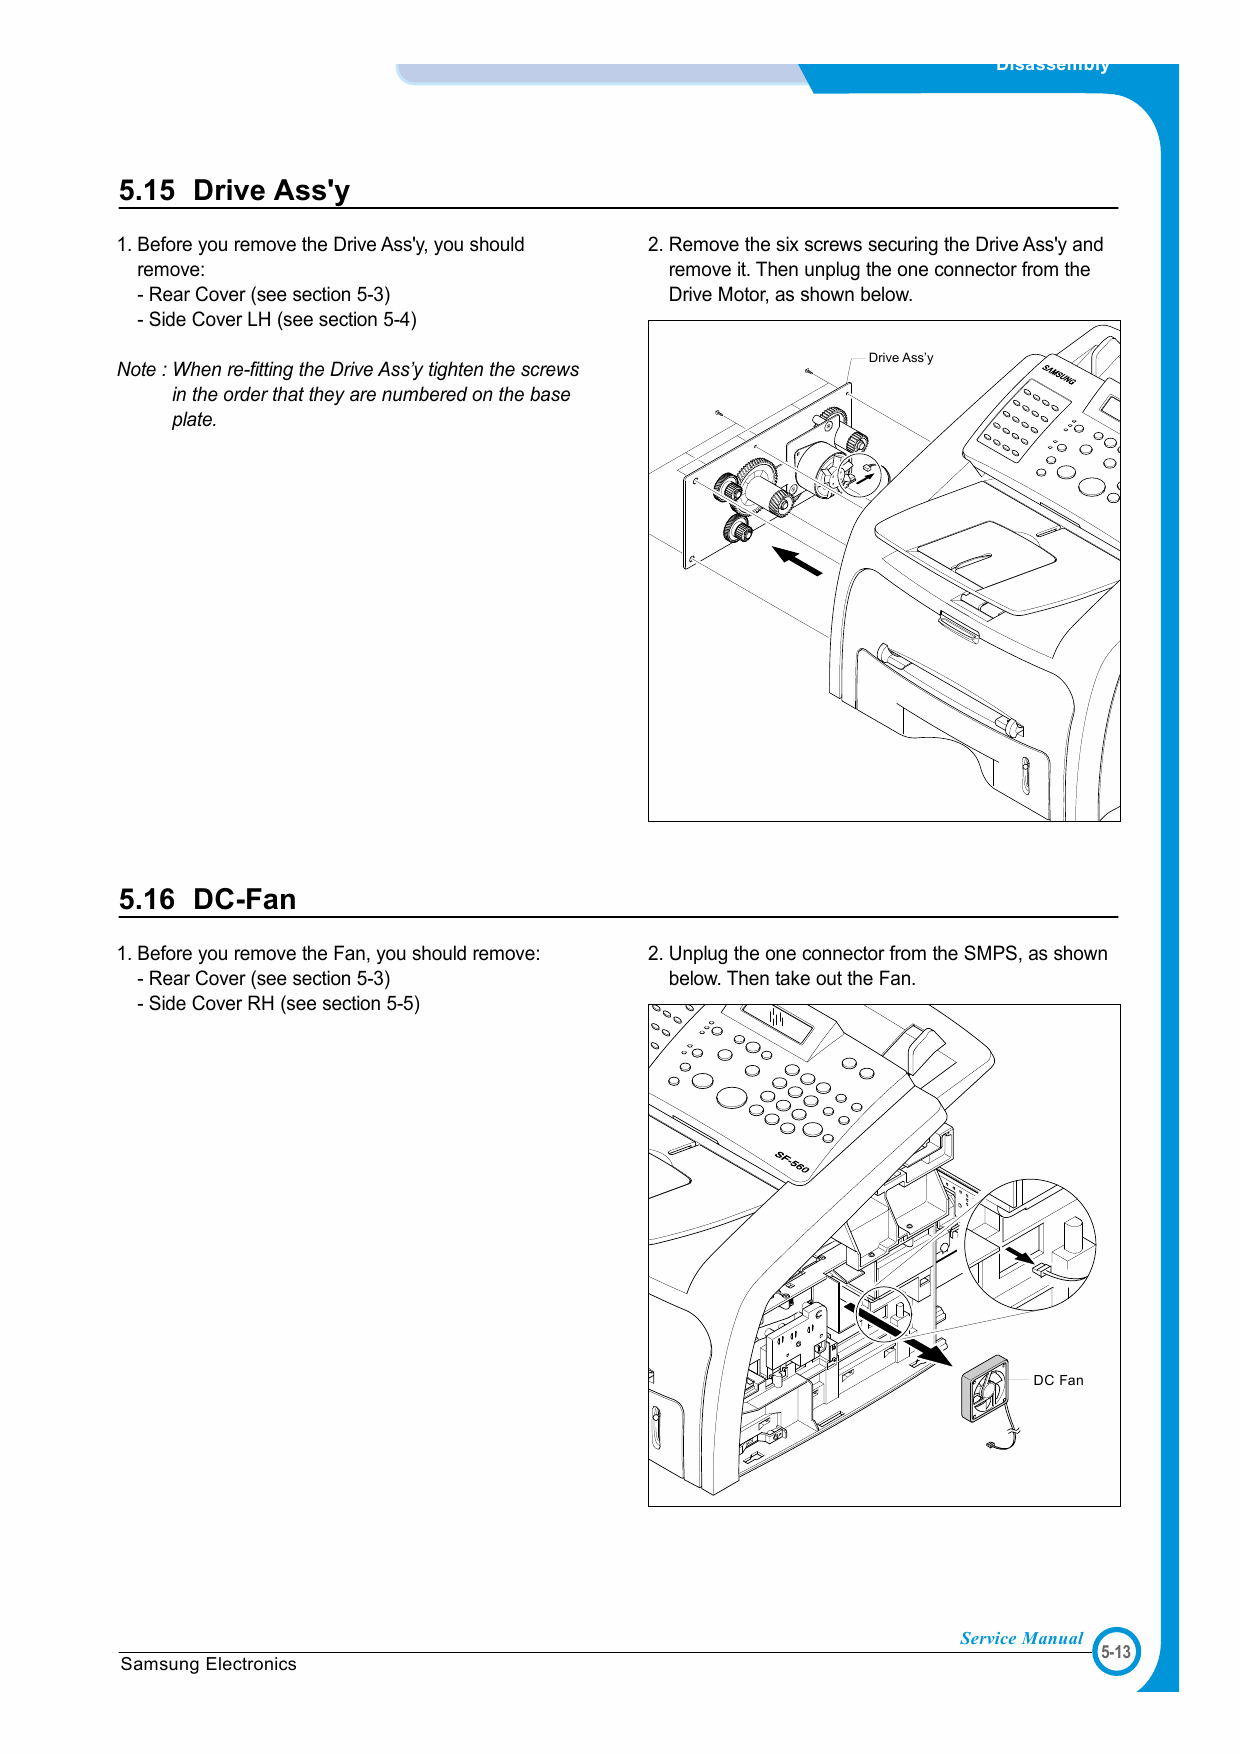 Samsung Digital-Laser-MFP SF-560 565P Parts and Service Manual